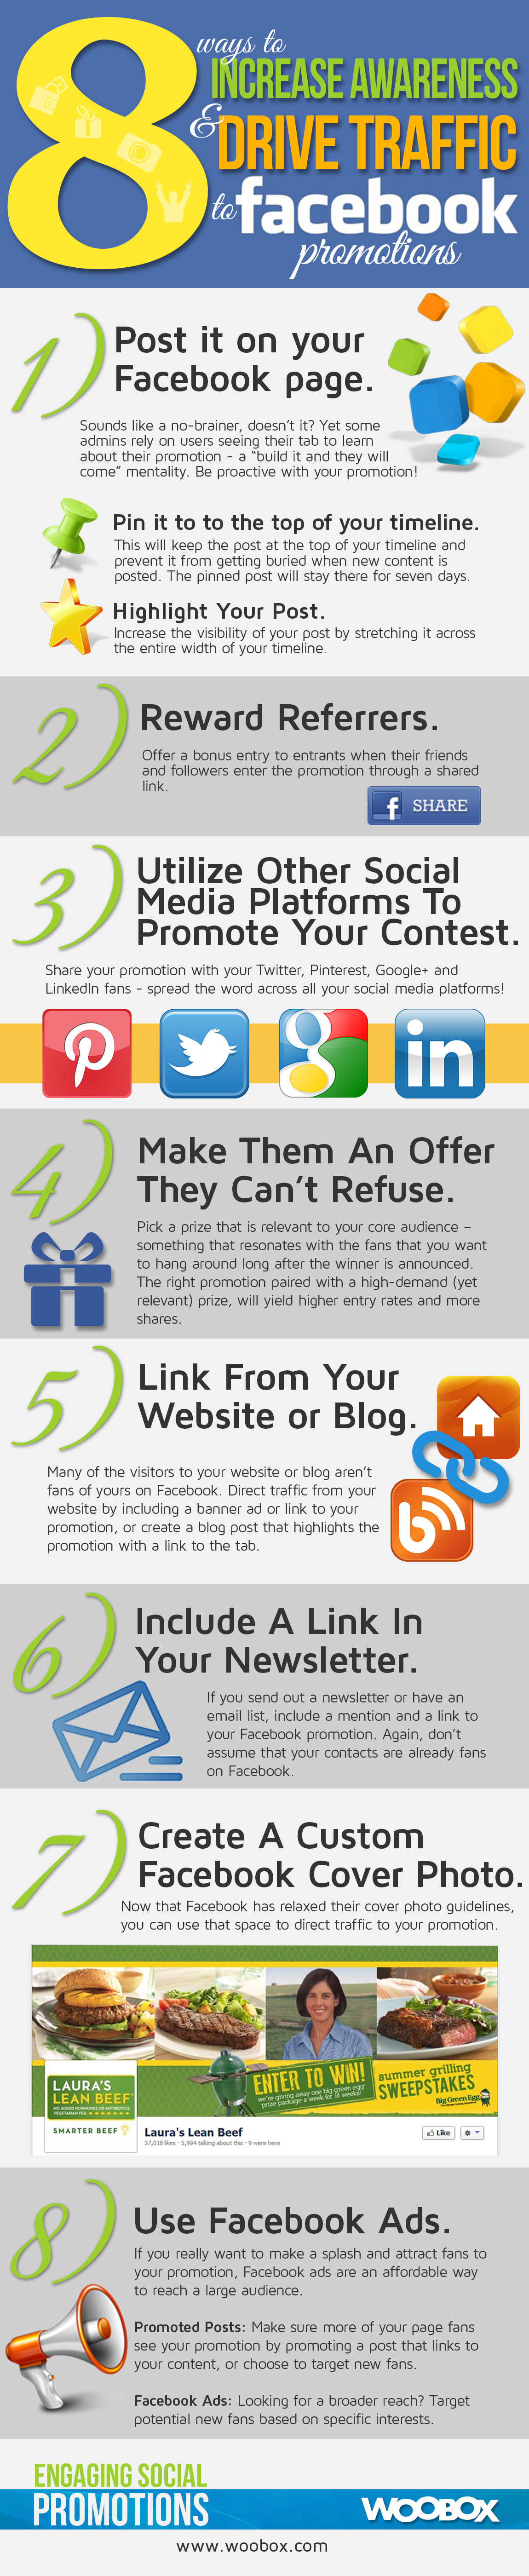 8-Ways-to-Increase-Promotion-Awareness-Infographic